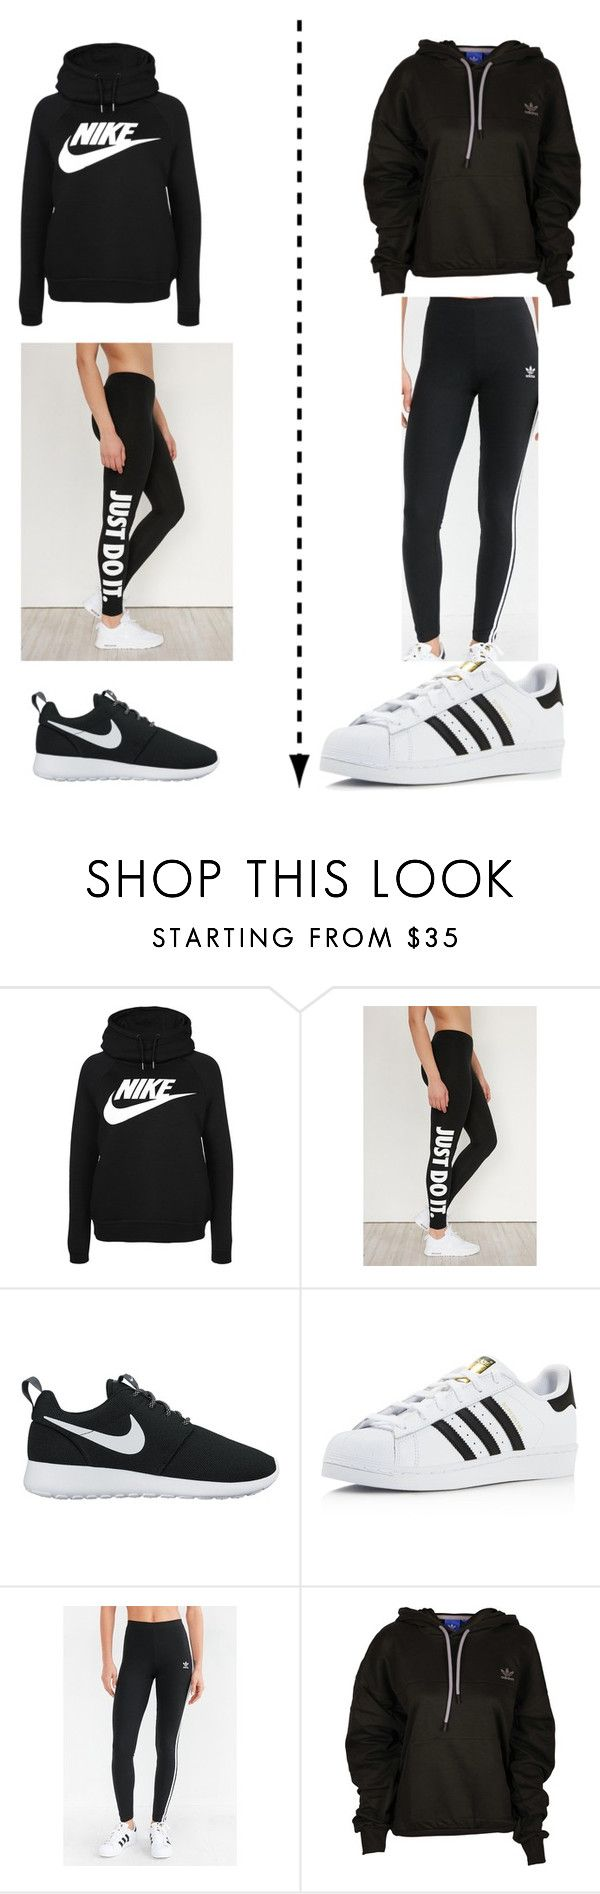 """""""Which one do you like better?"""" by queen7901 ❤ liked on Polyvore featuring NIKE and adidas"""